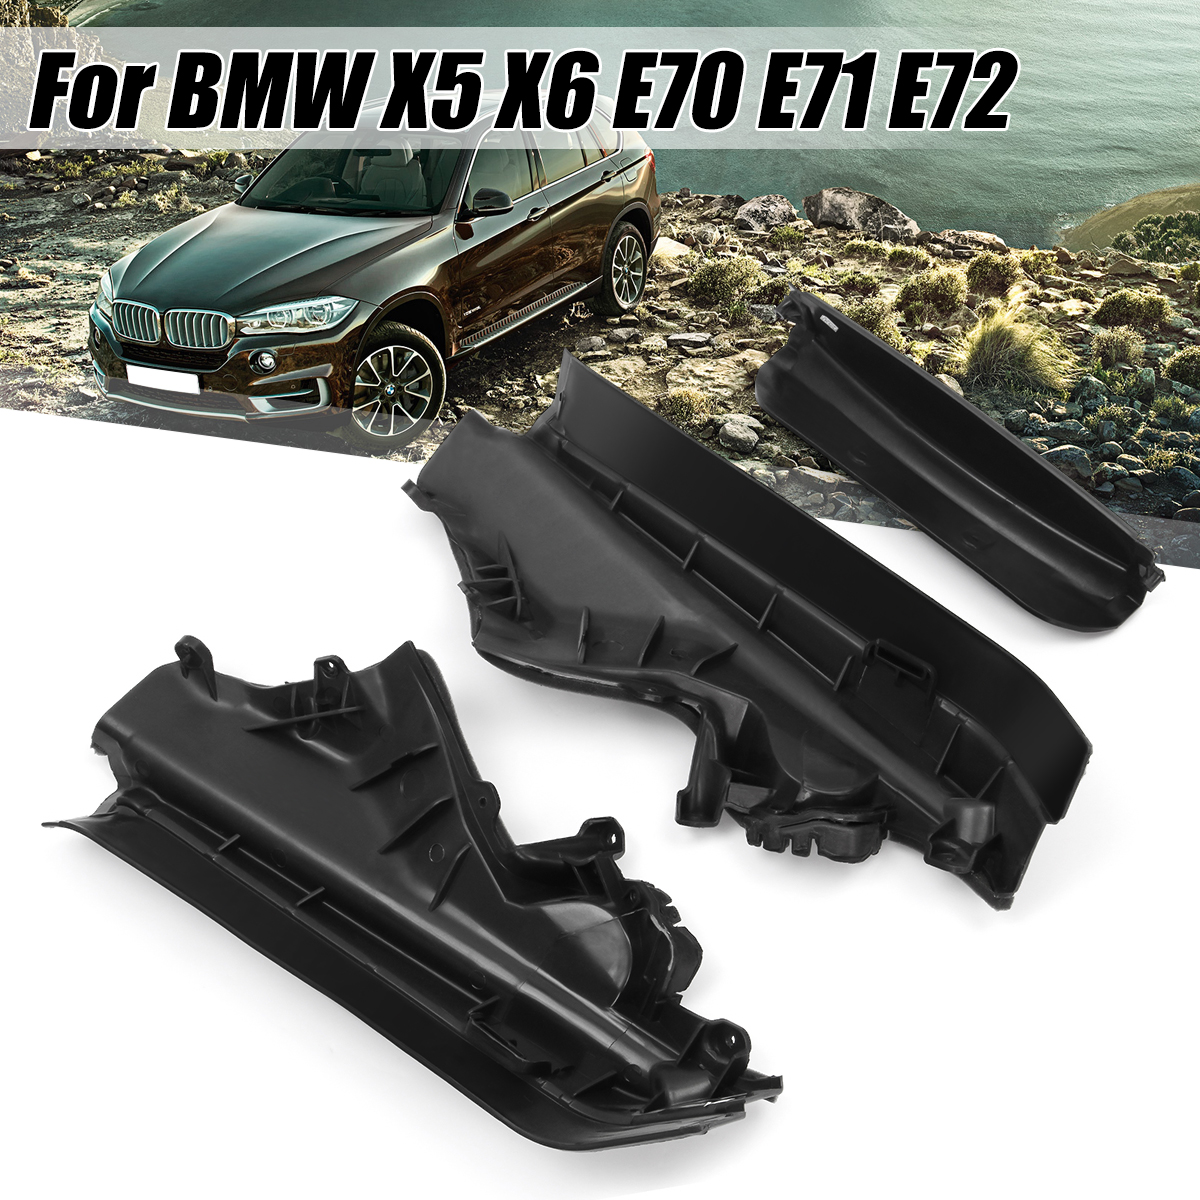 Black Plastic 3pcs Engine Upper Compartment Partition Panel Set For BMW X5 X6 E70 51717169419 51717169420 51717169421